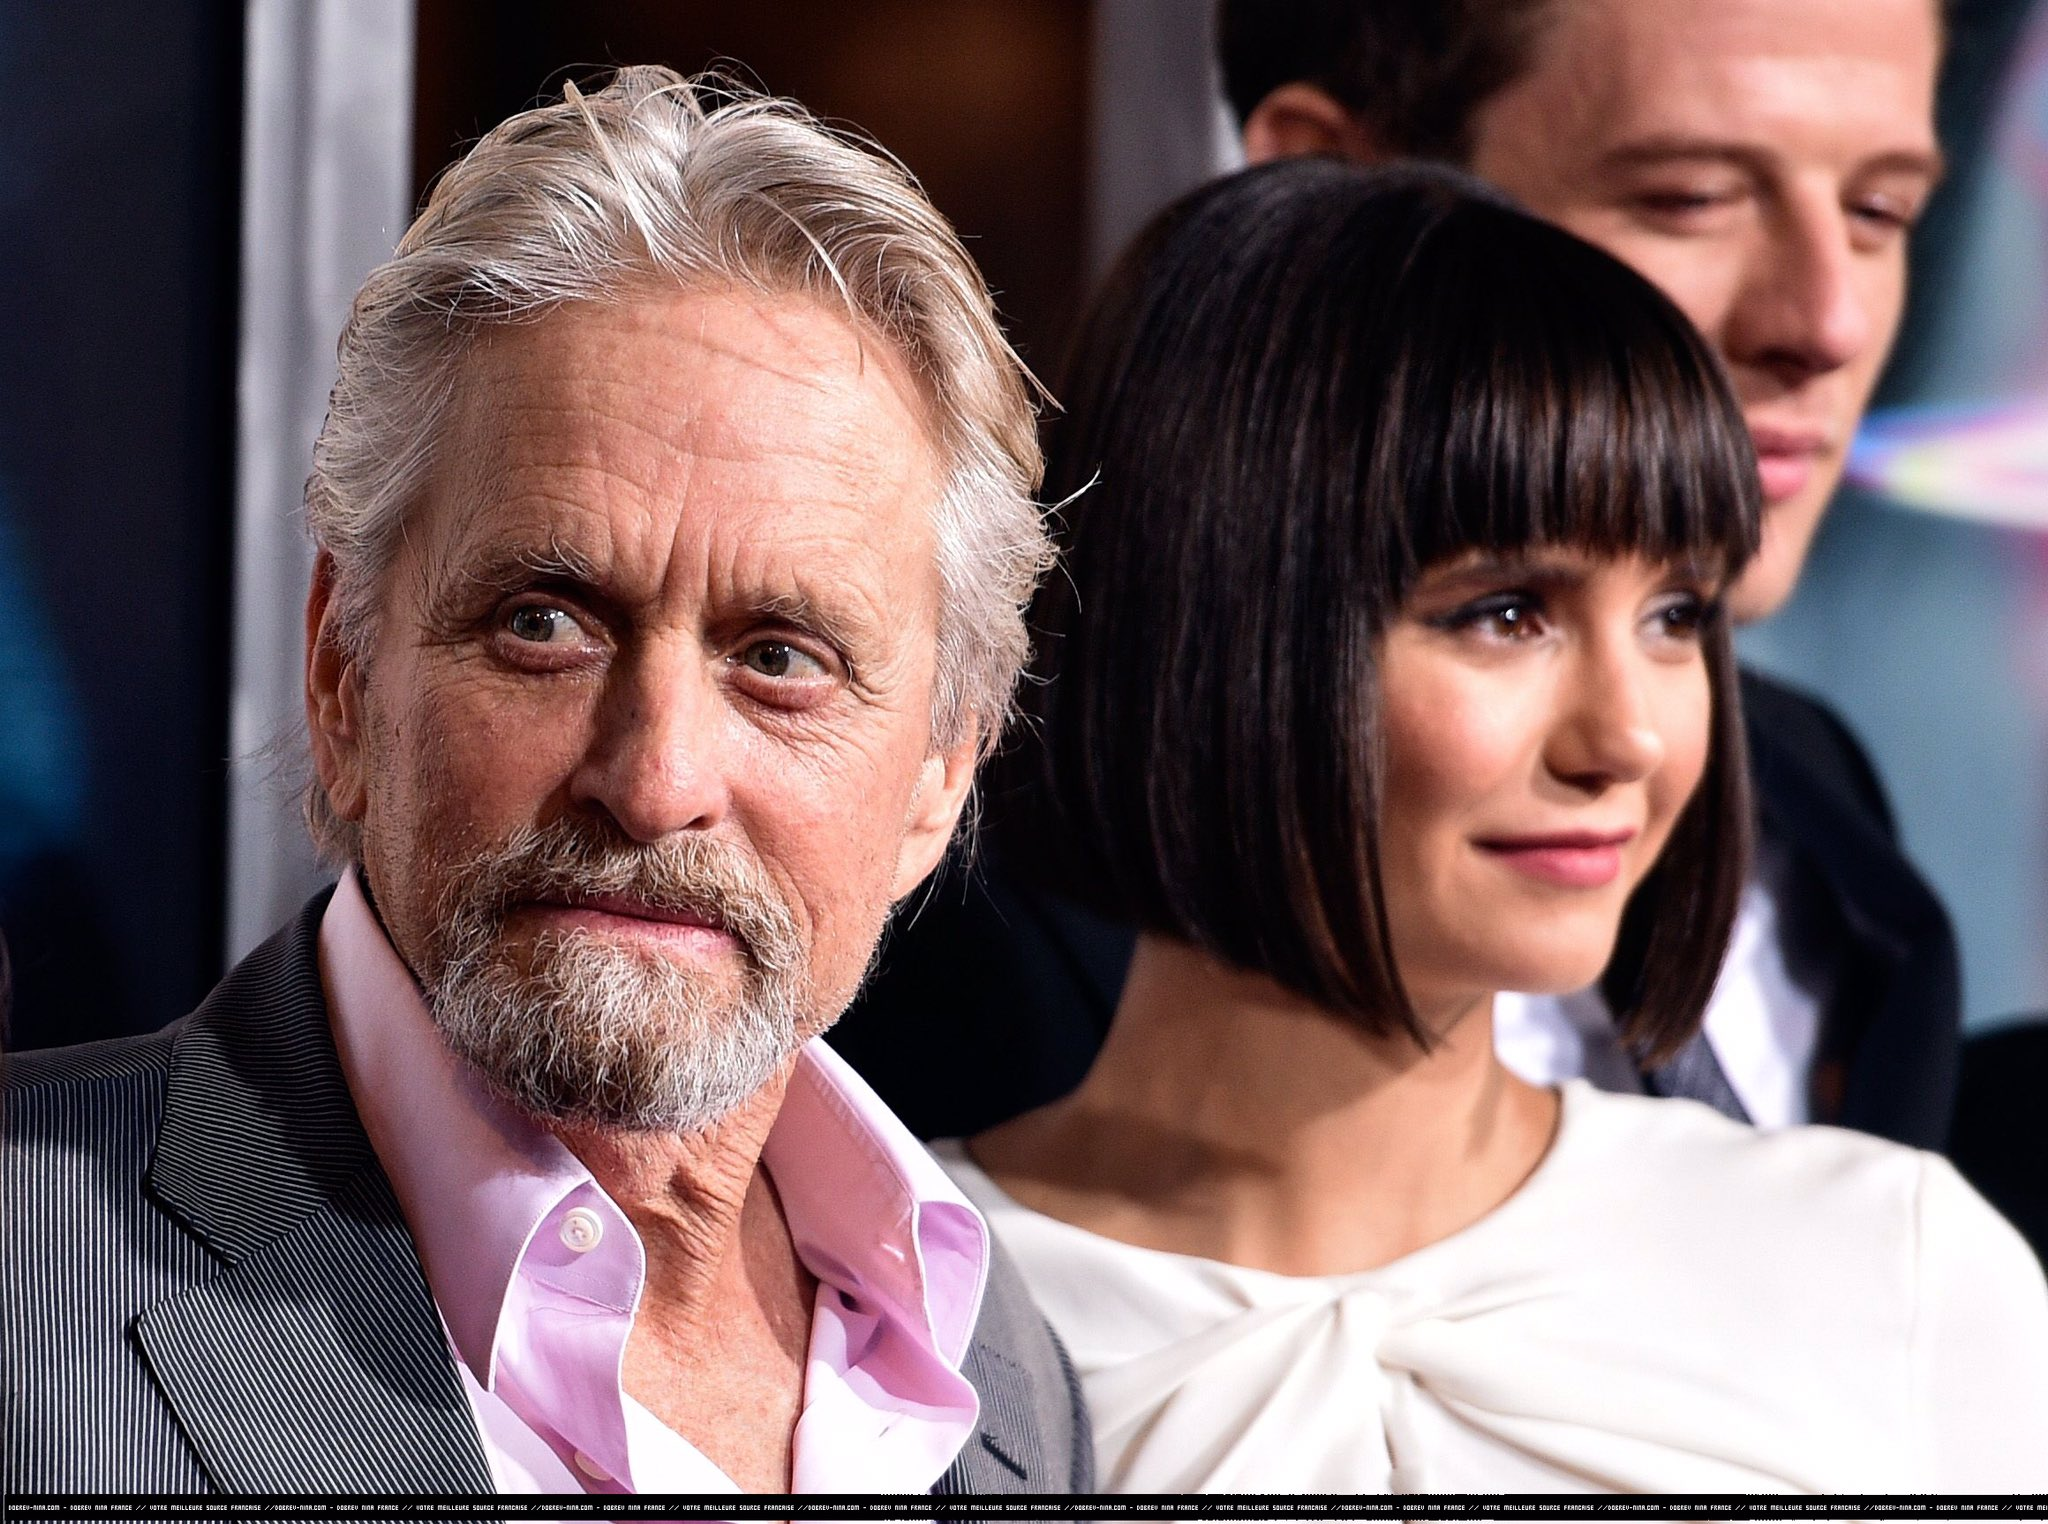 He's a legend. So proud and honored to have had the opportunity to work with #MichaelDouglas on @FlatlinersMovie https://t.co/exC7jFTJ5n